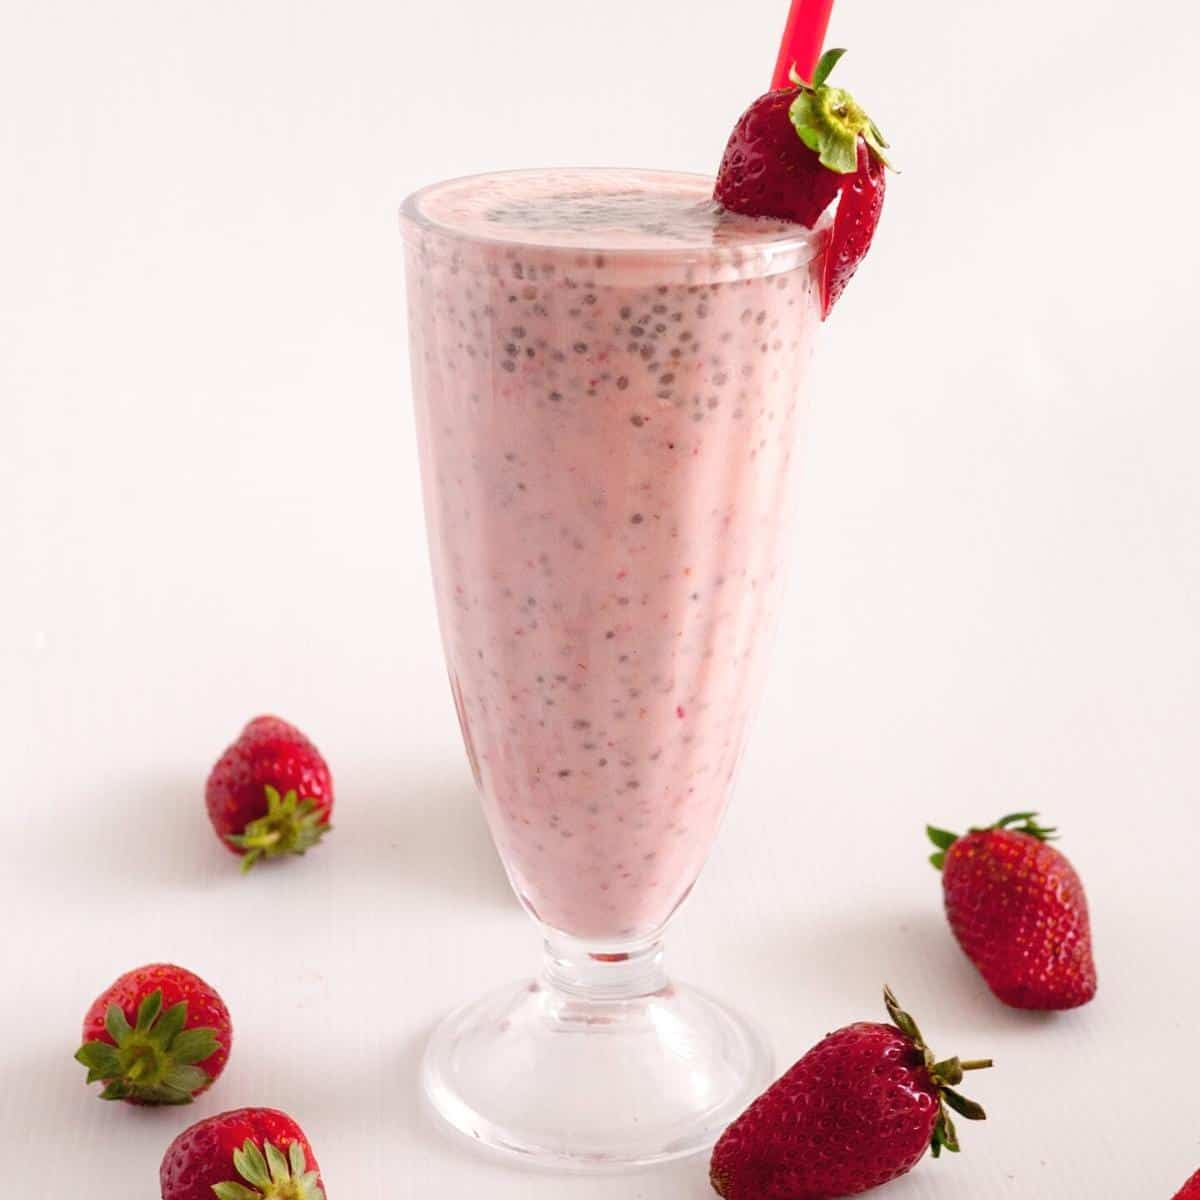 A tall glass of smoothie and strawberries